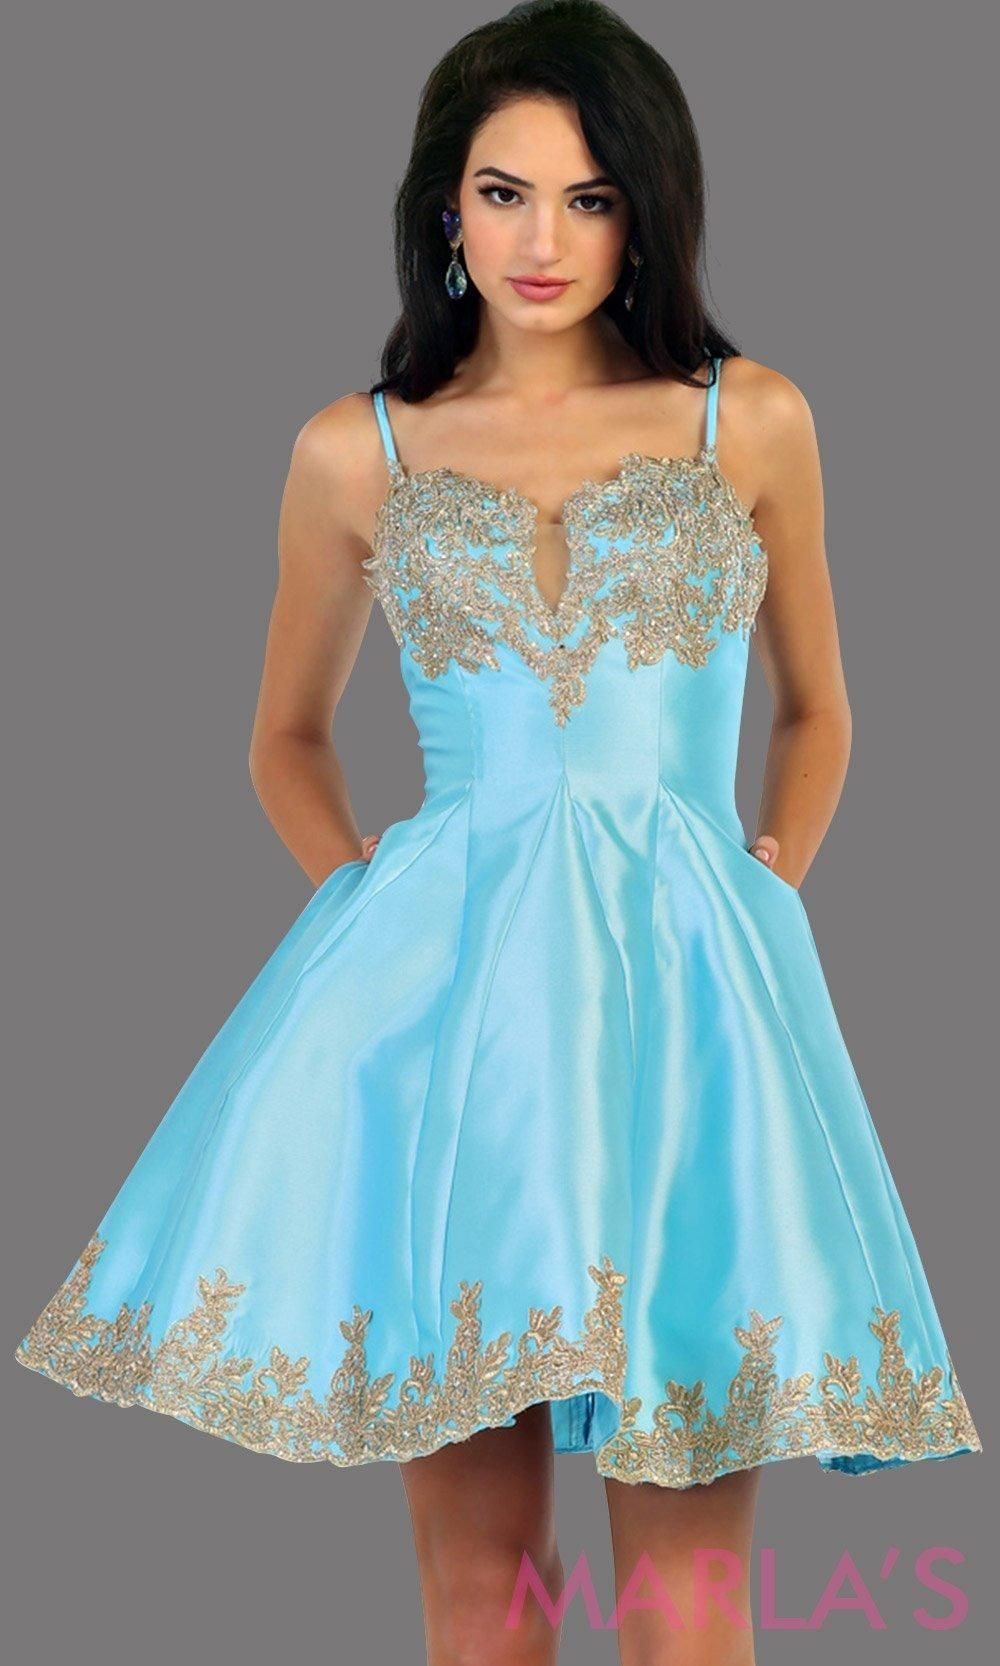 85ad230daf59 1445Short satin aqua grade 8 graduation dress with gold lace detail and  straps. This dress features pockets. Perfect light blue short prom dress,  ...